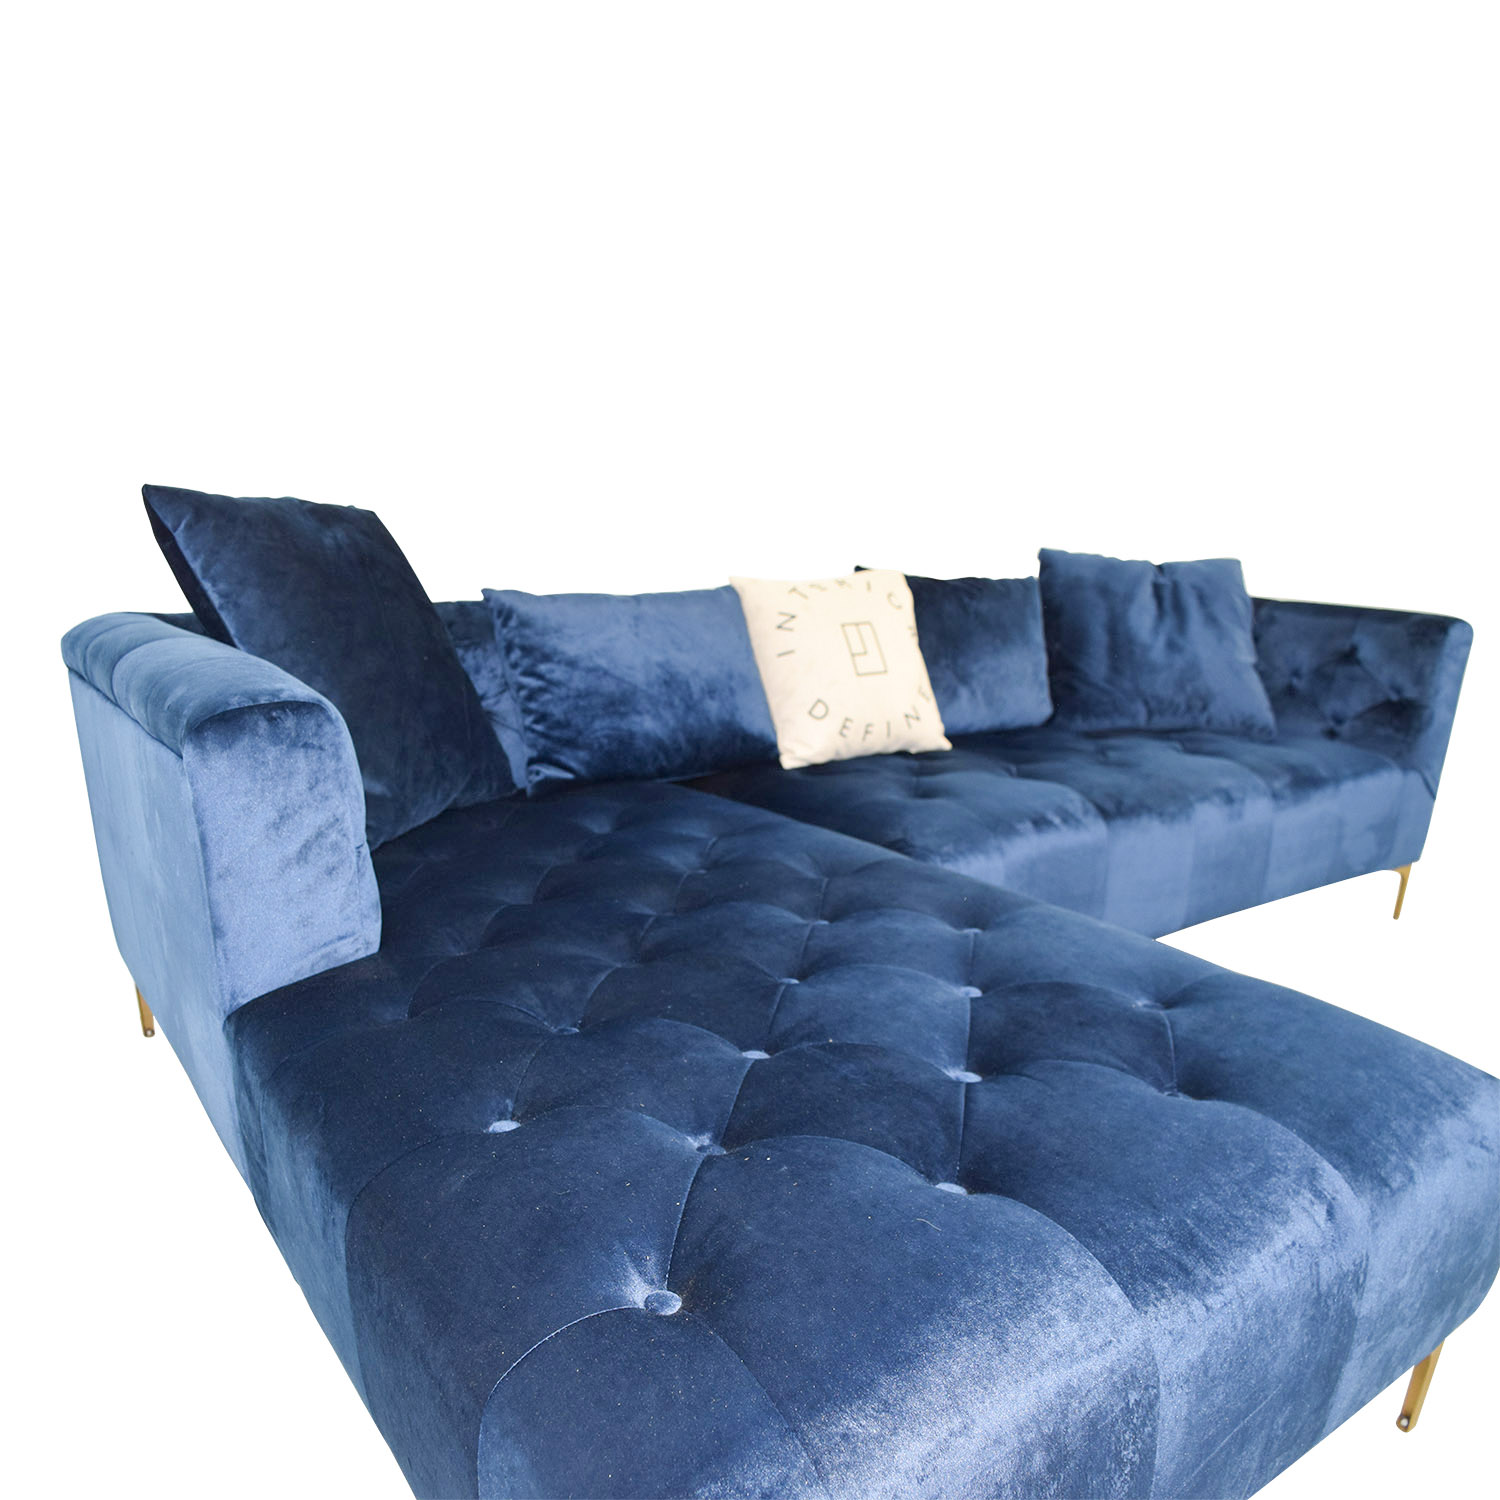 55 off ms chesterfield blue tufted left chaise. Black Bedroom Furniture Sets. Home Design Ideas